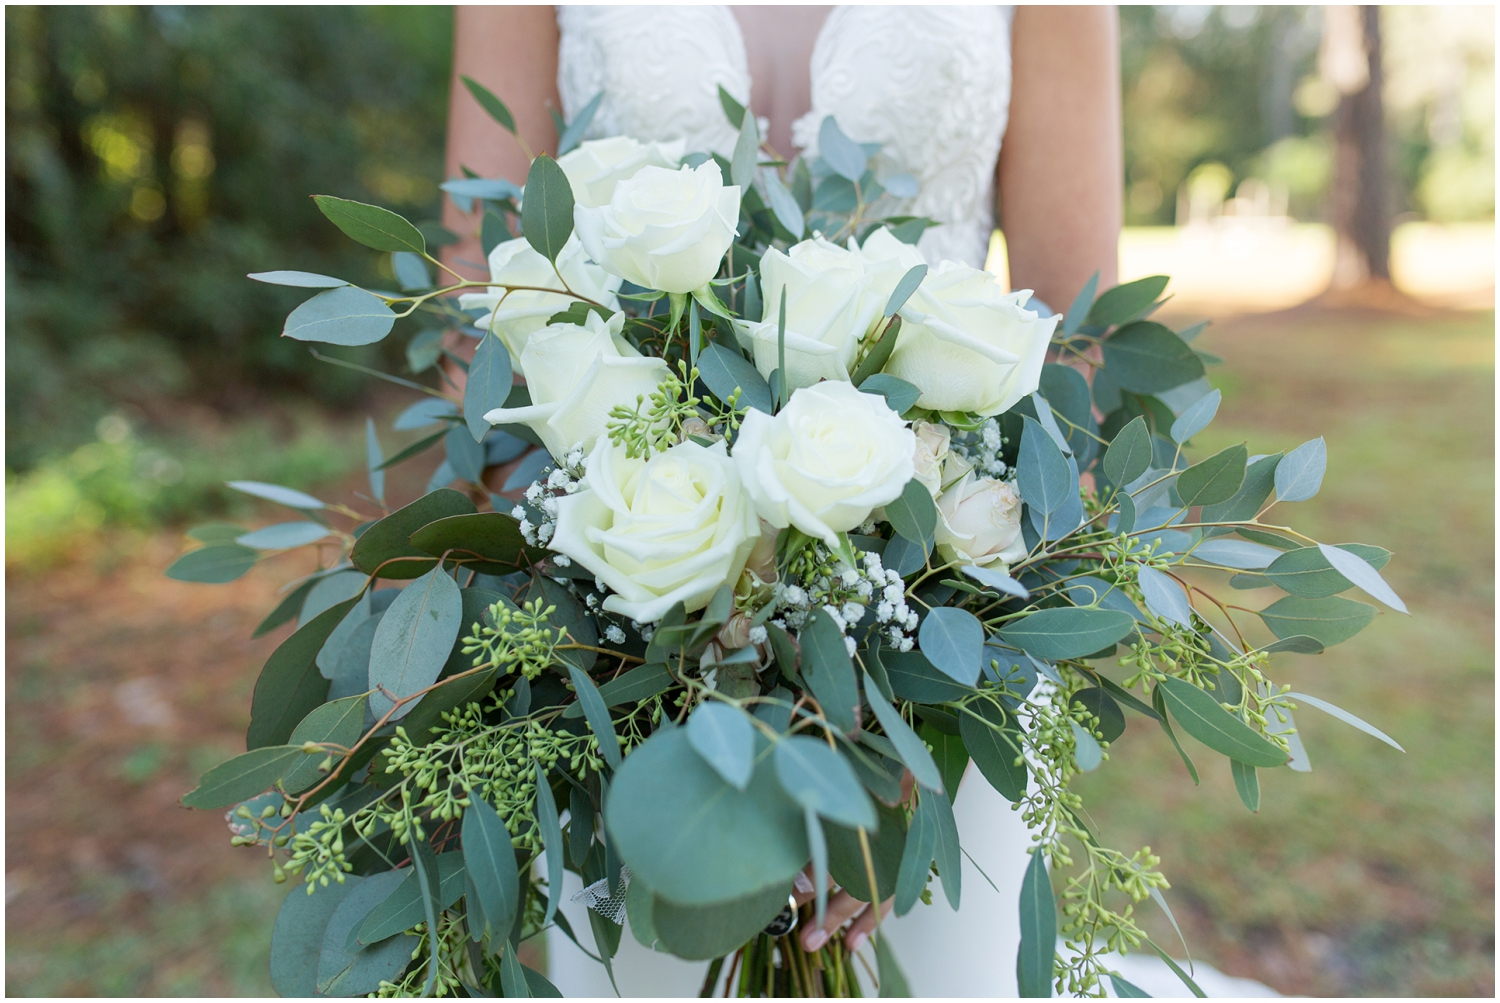 Bride's greenery and white wedding bouquet